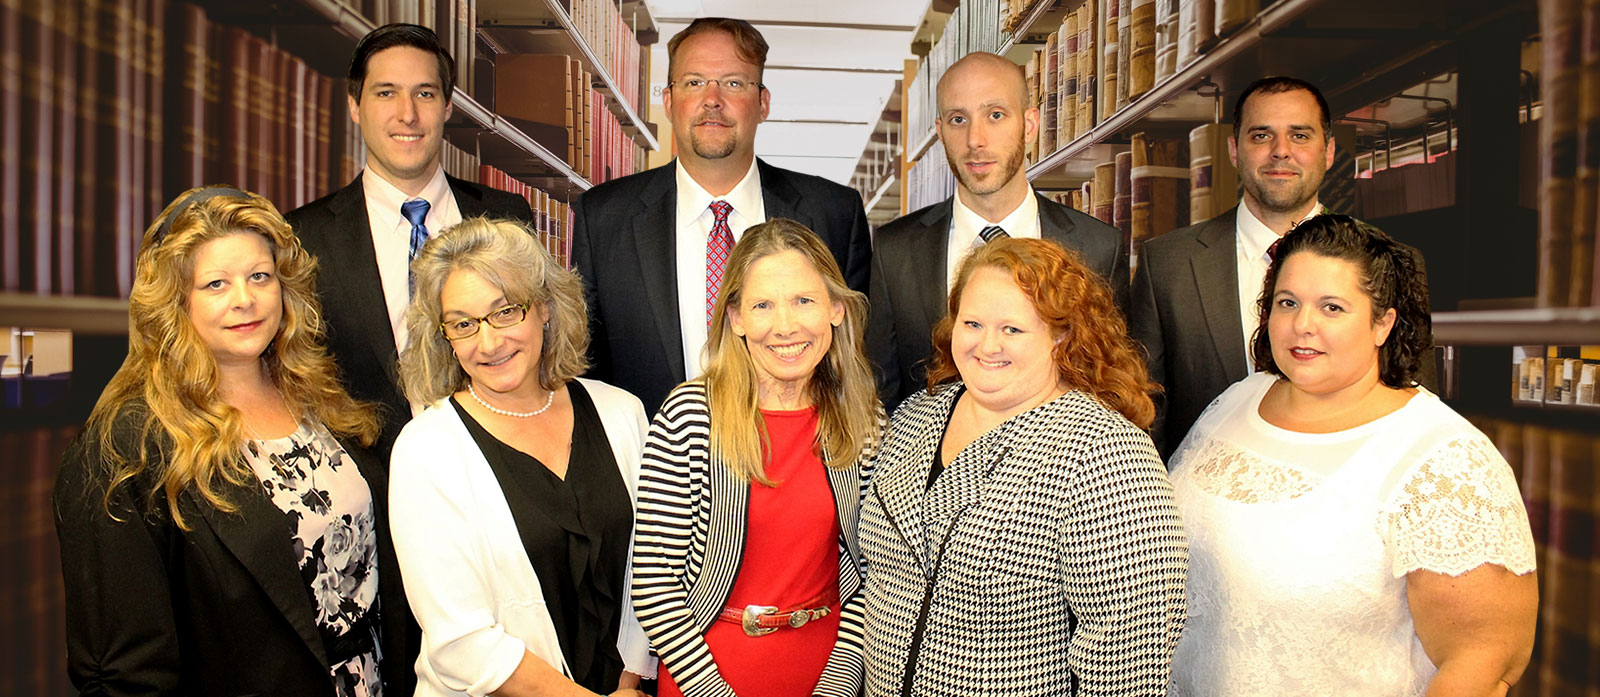 The staff at Alexander Law Group, PLC